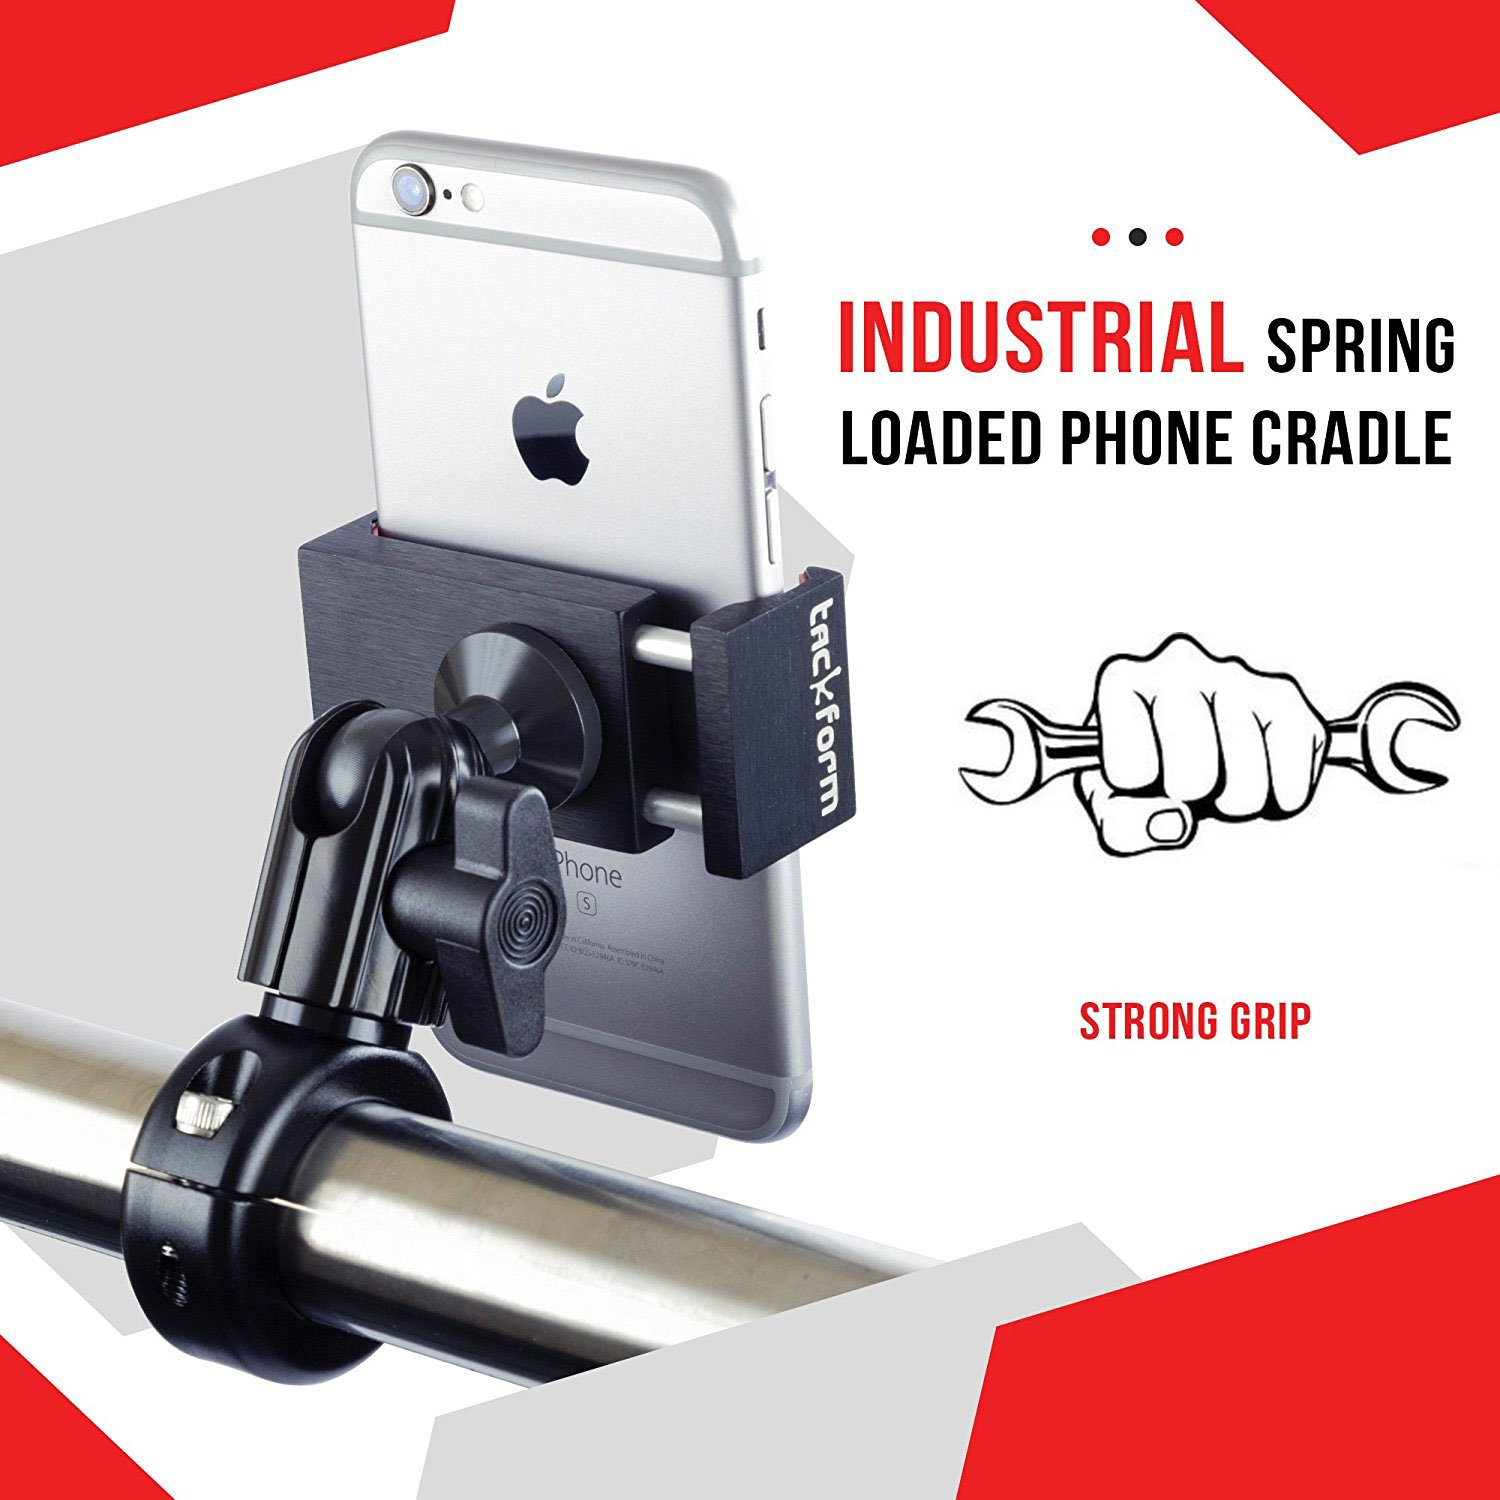 Metal Motorcycle Mount for Phone - by TACKFORM [Enduro Series] - NO SLINGS NEEDED. Rock solid holder for Regular and Plus sized iPhone and Samsung devices. Industrial Spring Grip by Tackform Solutions (Image #3)